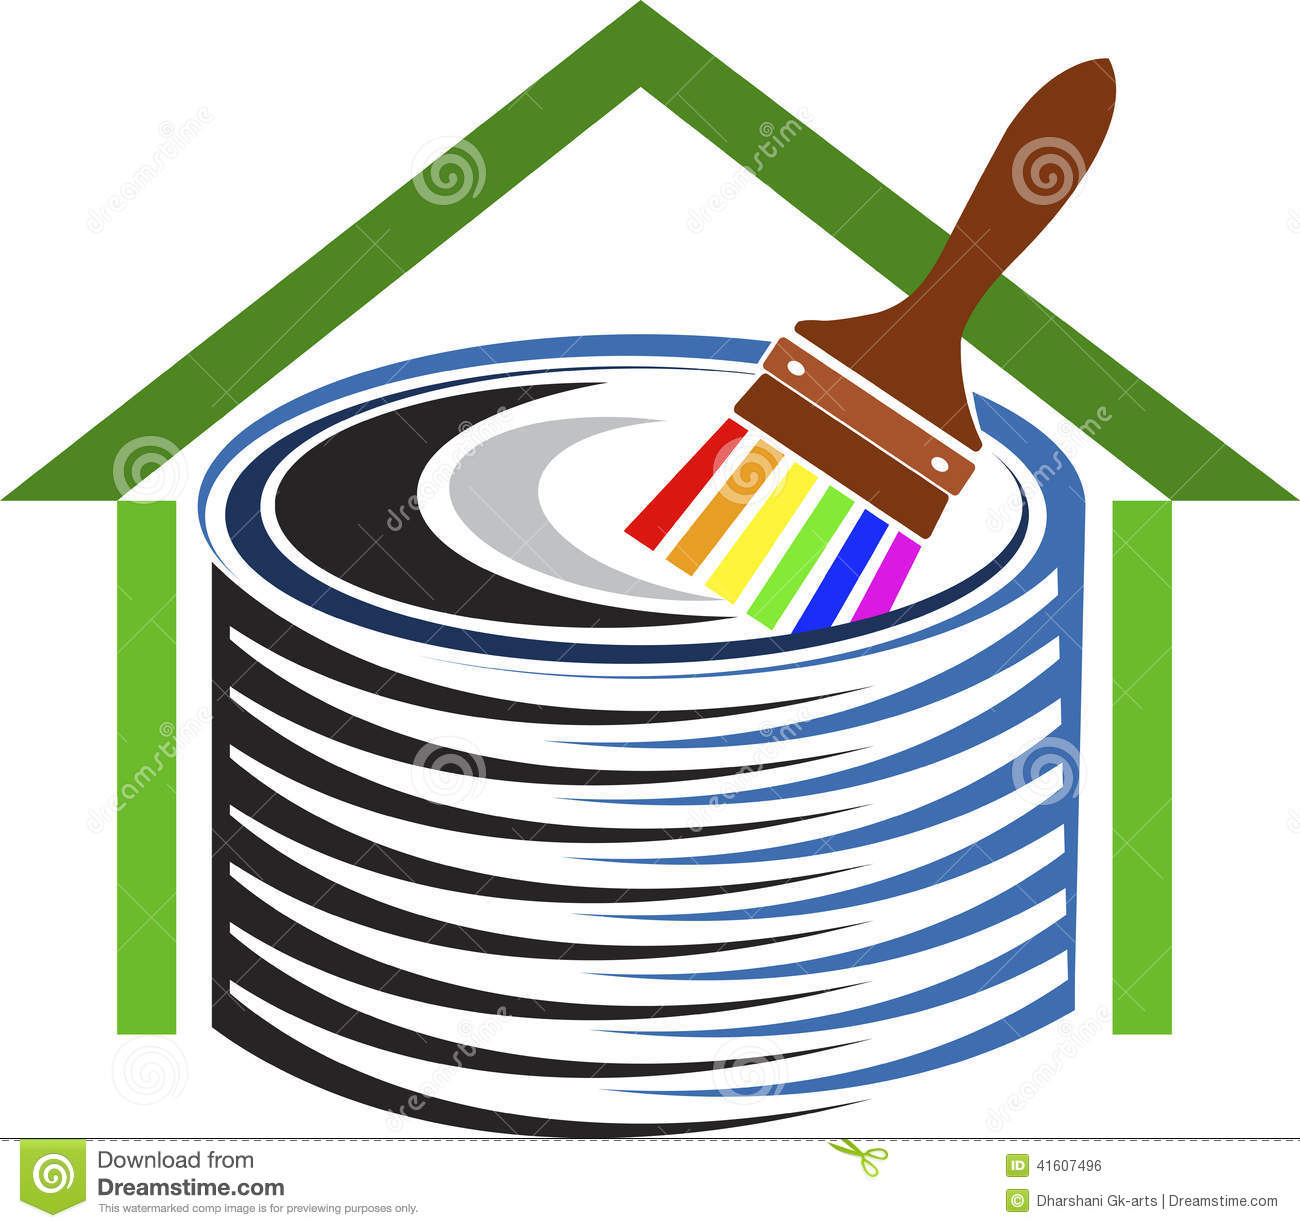 Home decor logo stock vector image 41607496 for Home decor logo 99design